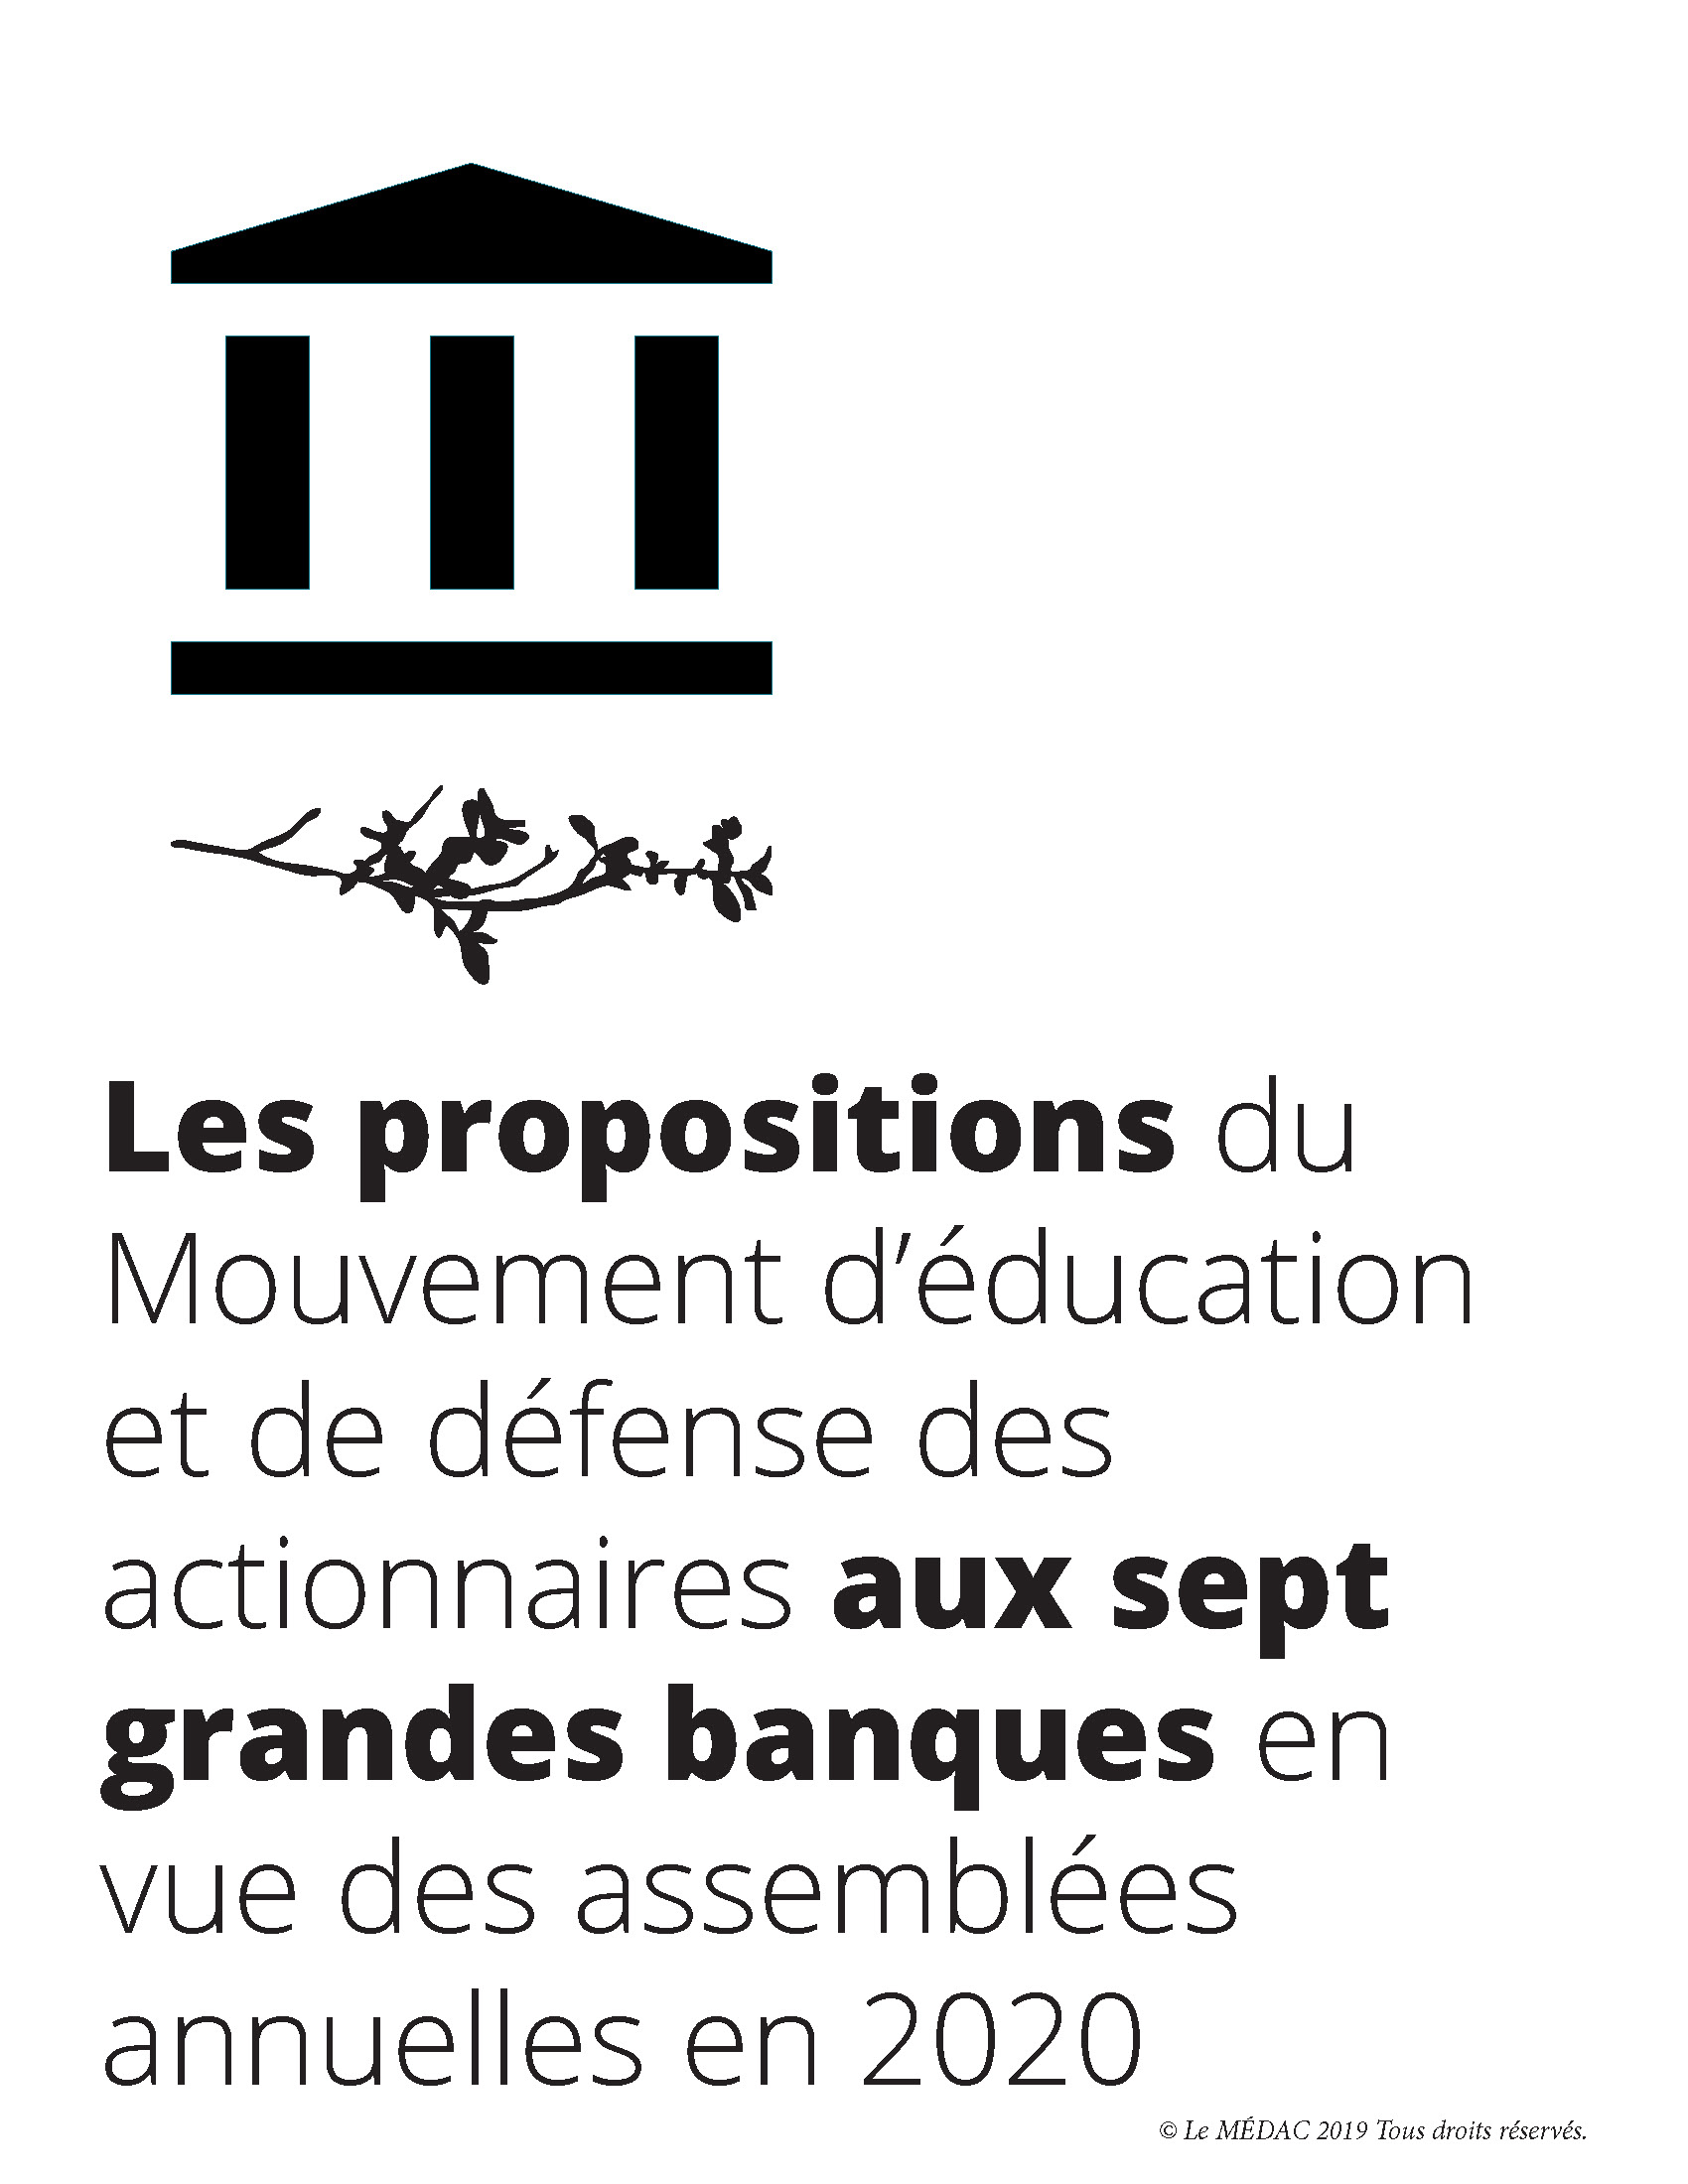 propositions 2020 banques